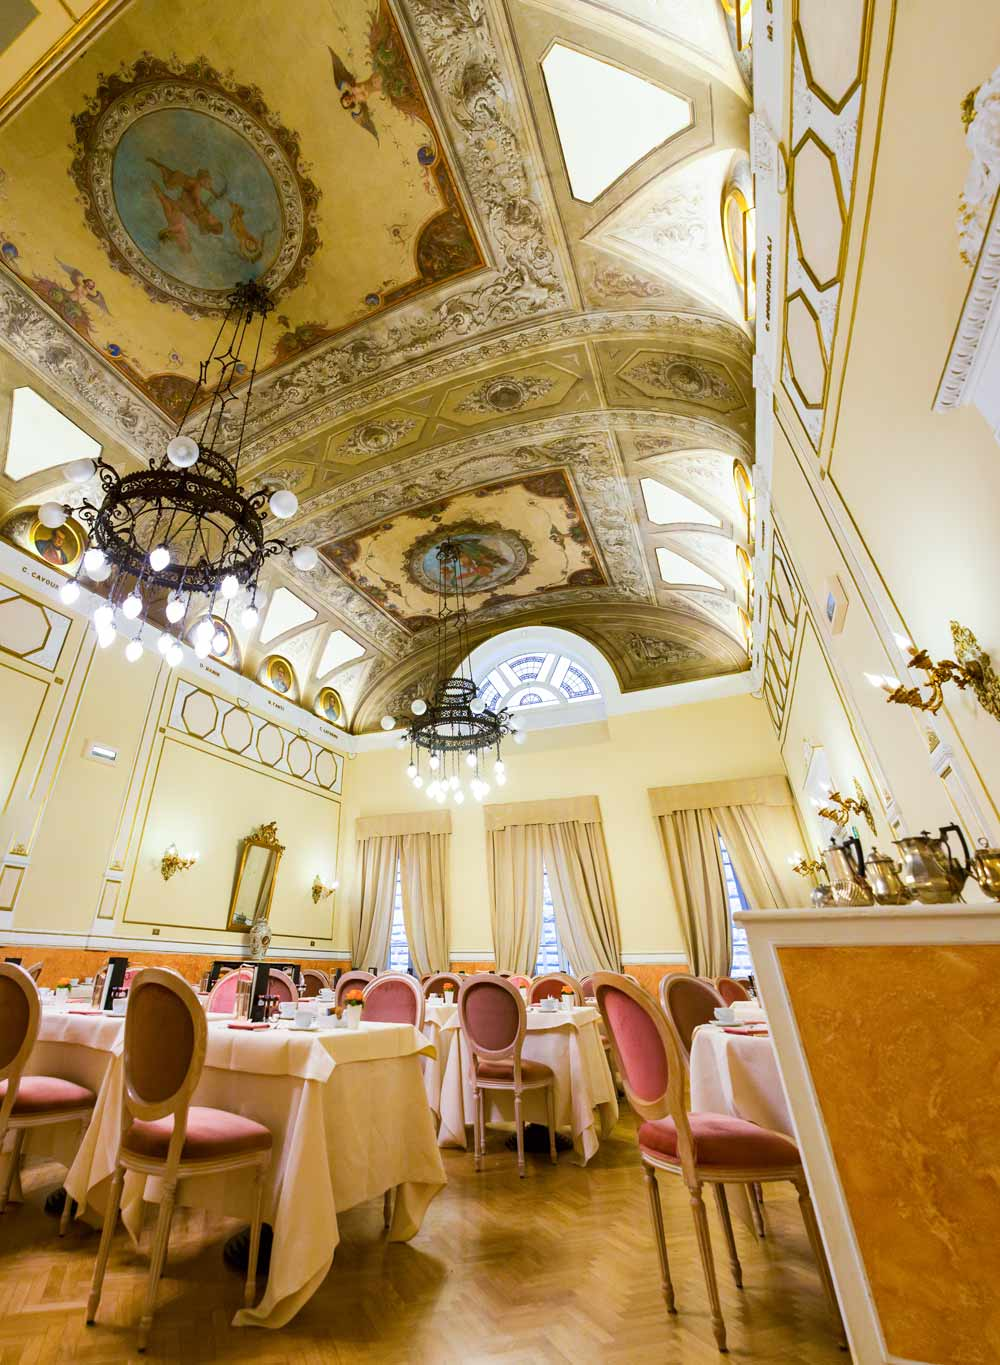 Breakfast Room at Hotel Bernini Palace, Florence, Italy